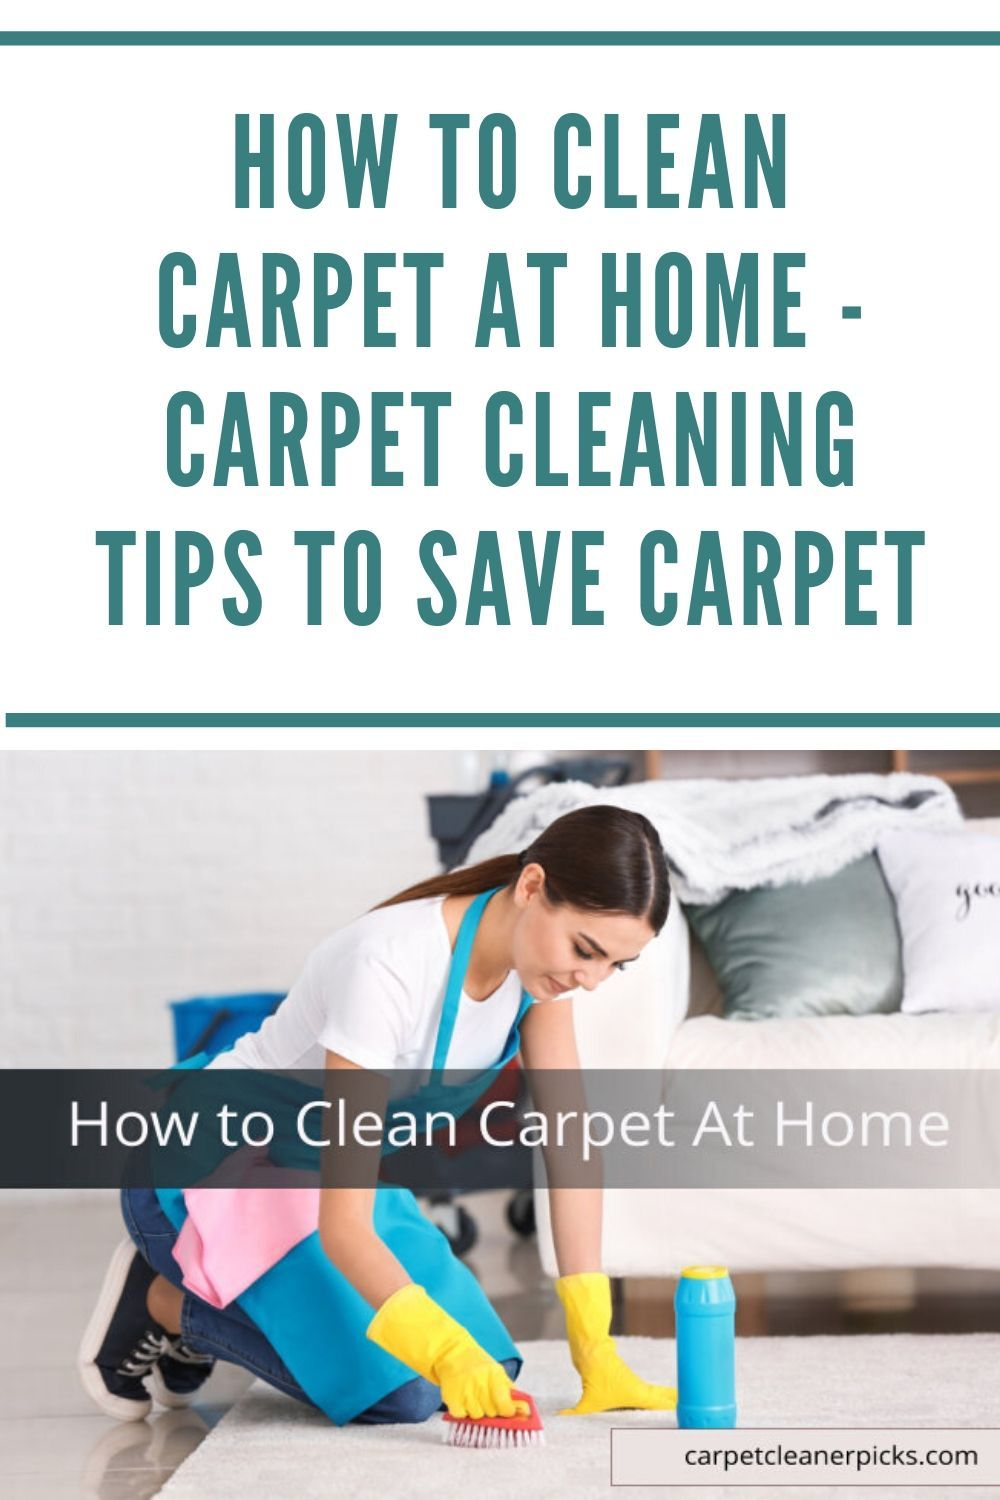 #CarpetCleaningTips #HowtoCleanCarpet #CarpetCleaning